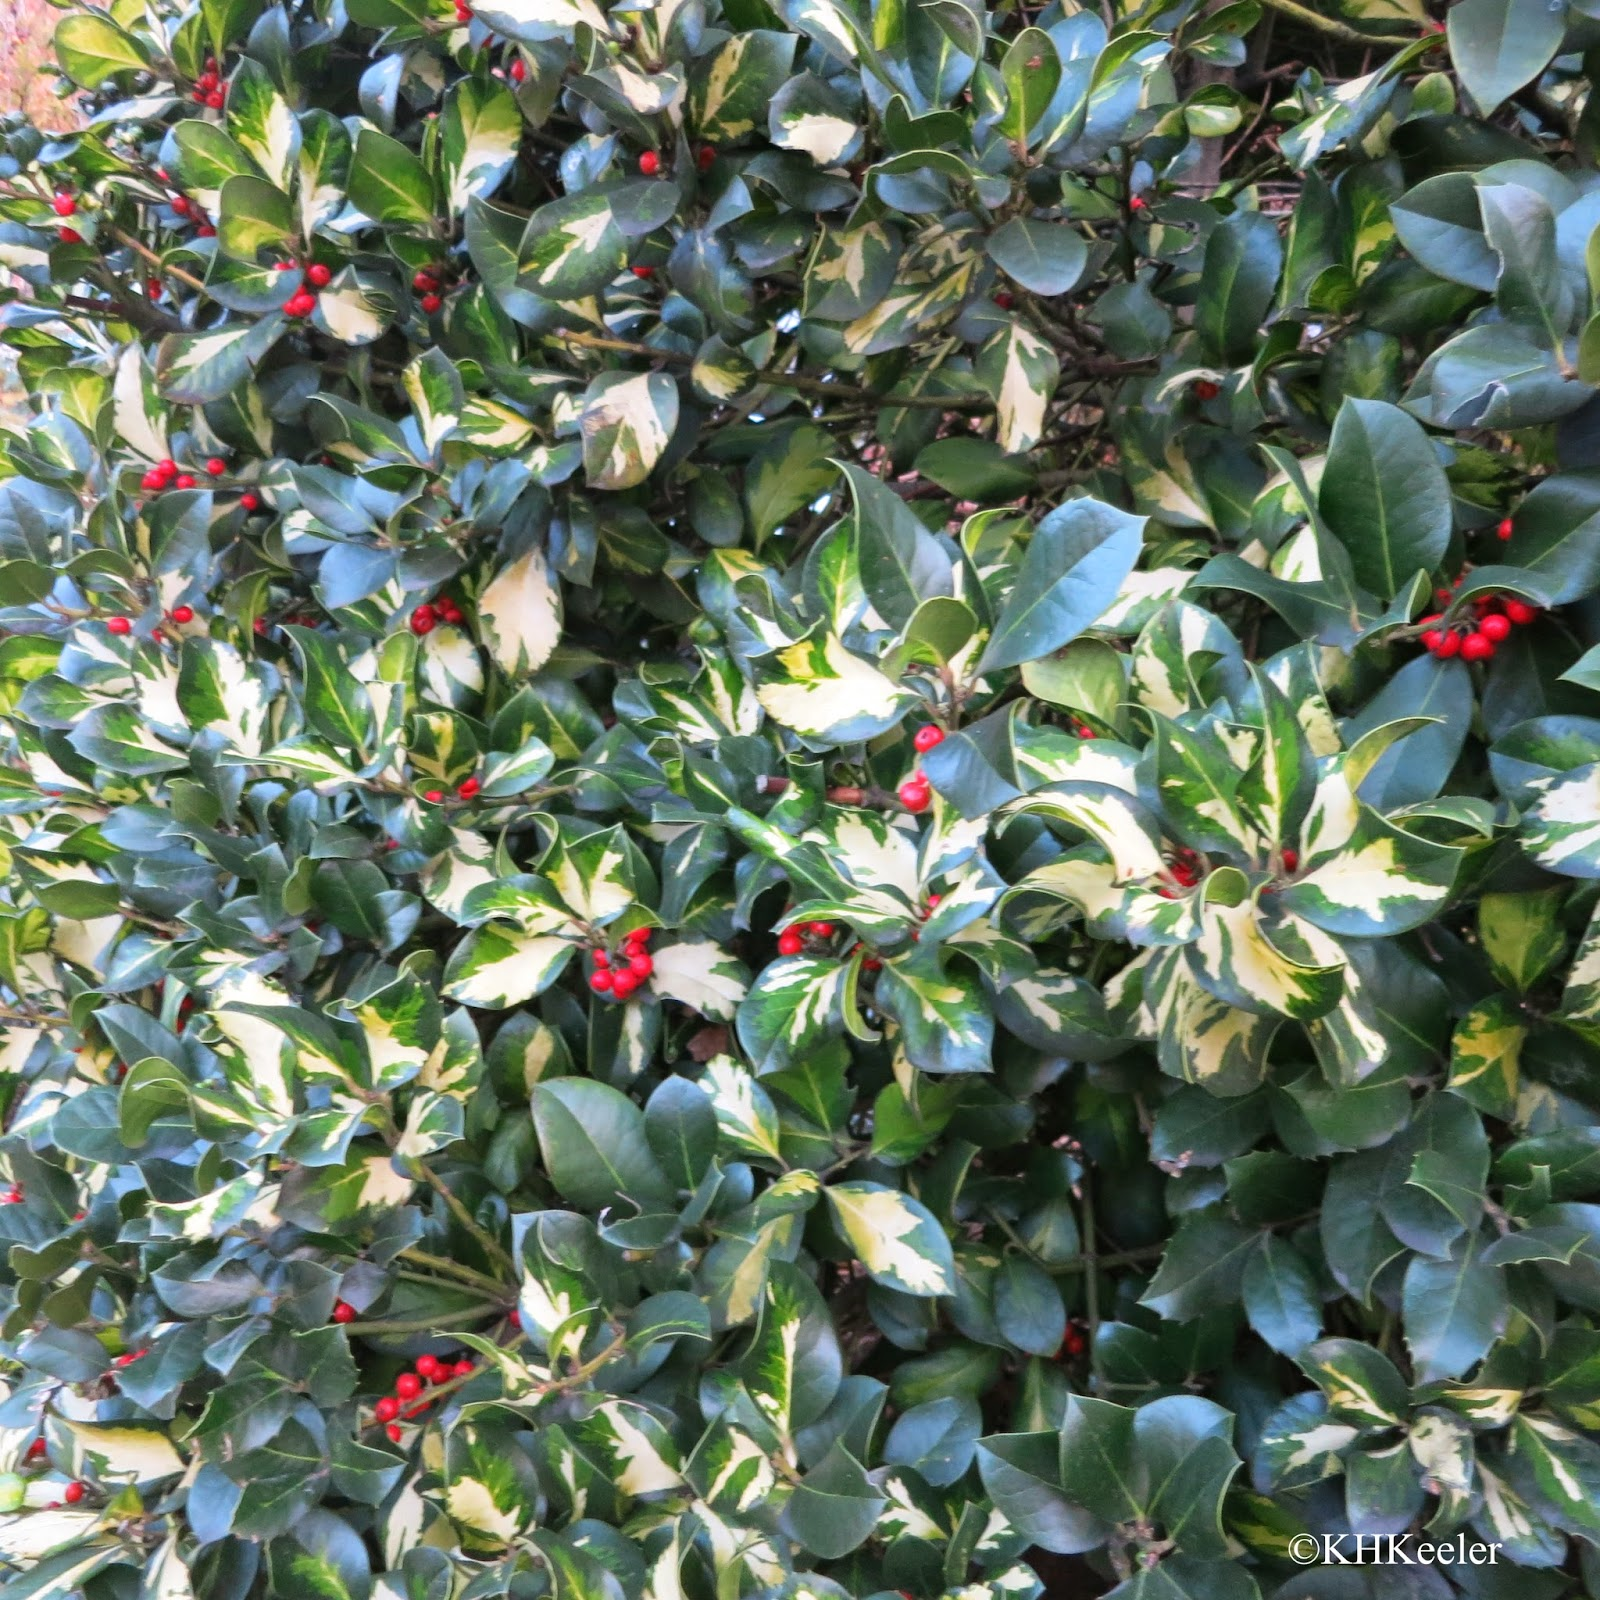 European holly, Ilex aquifolium